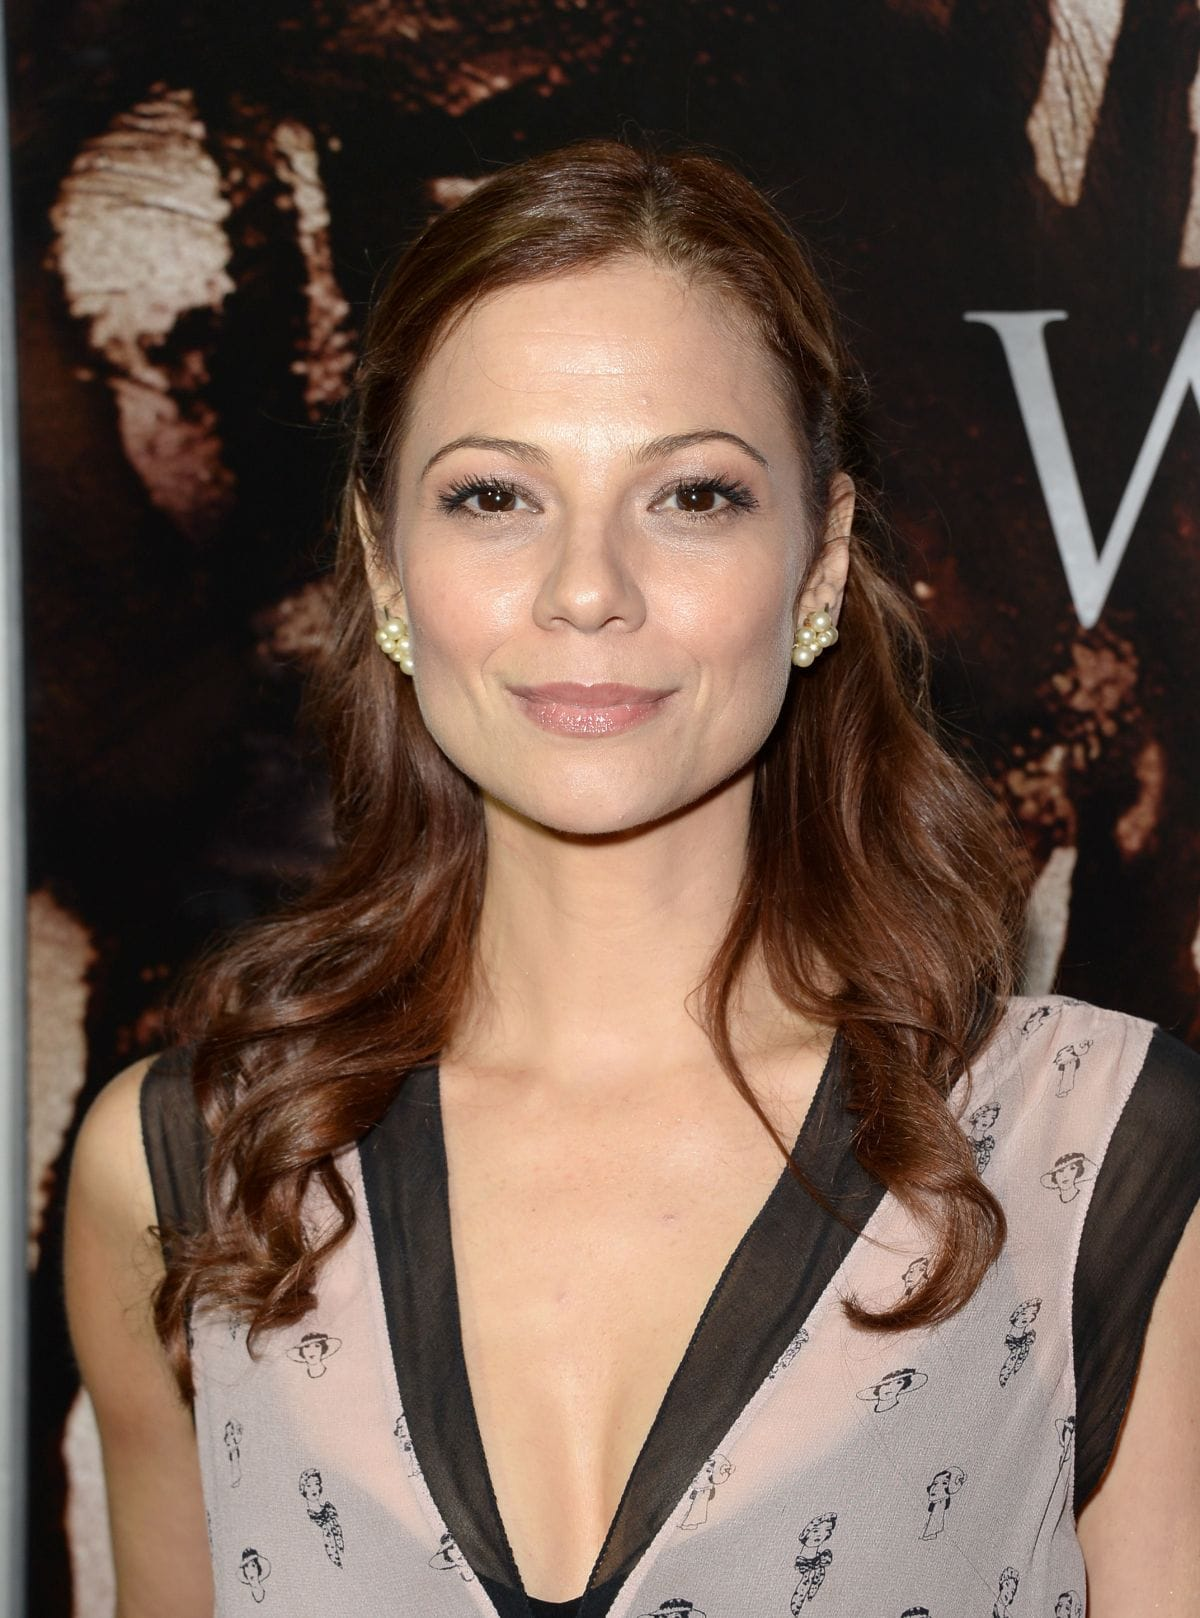 Tamara Braun Full hd wallpapers